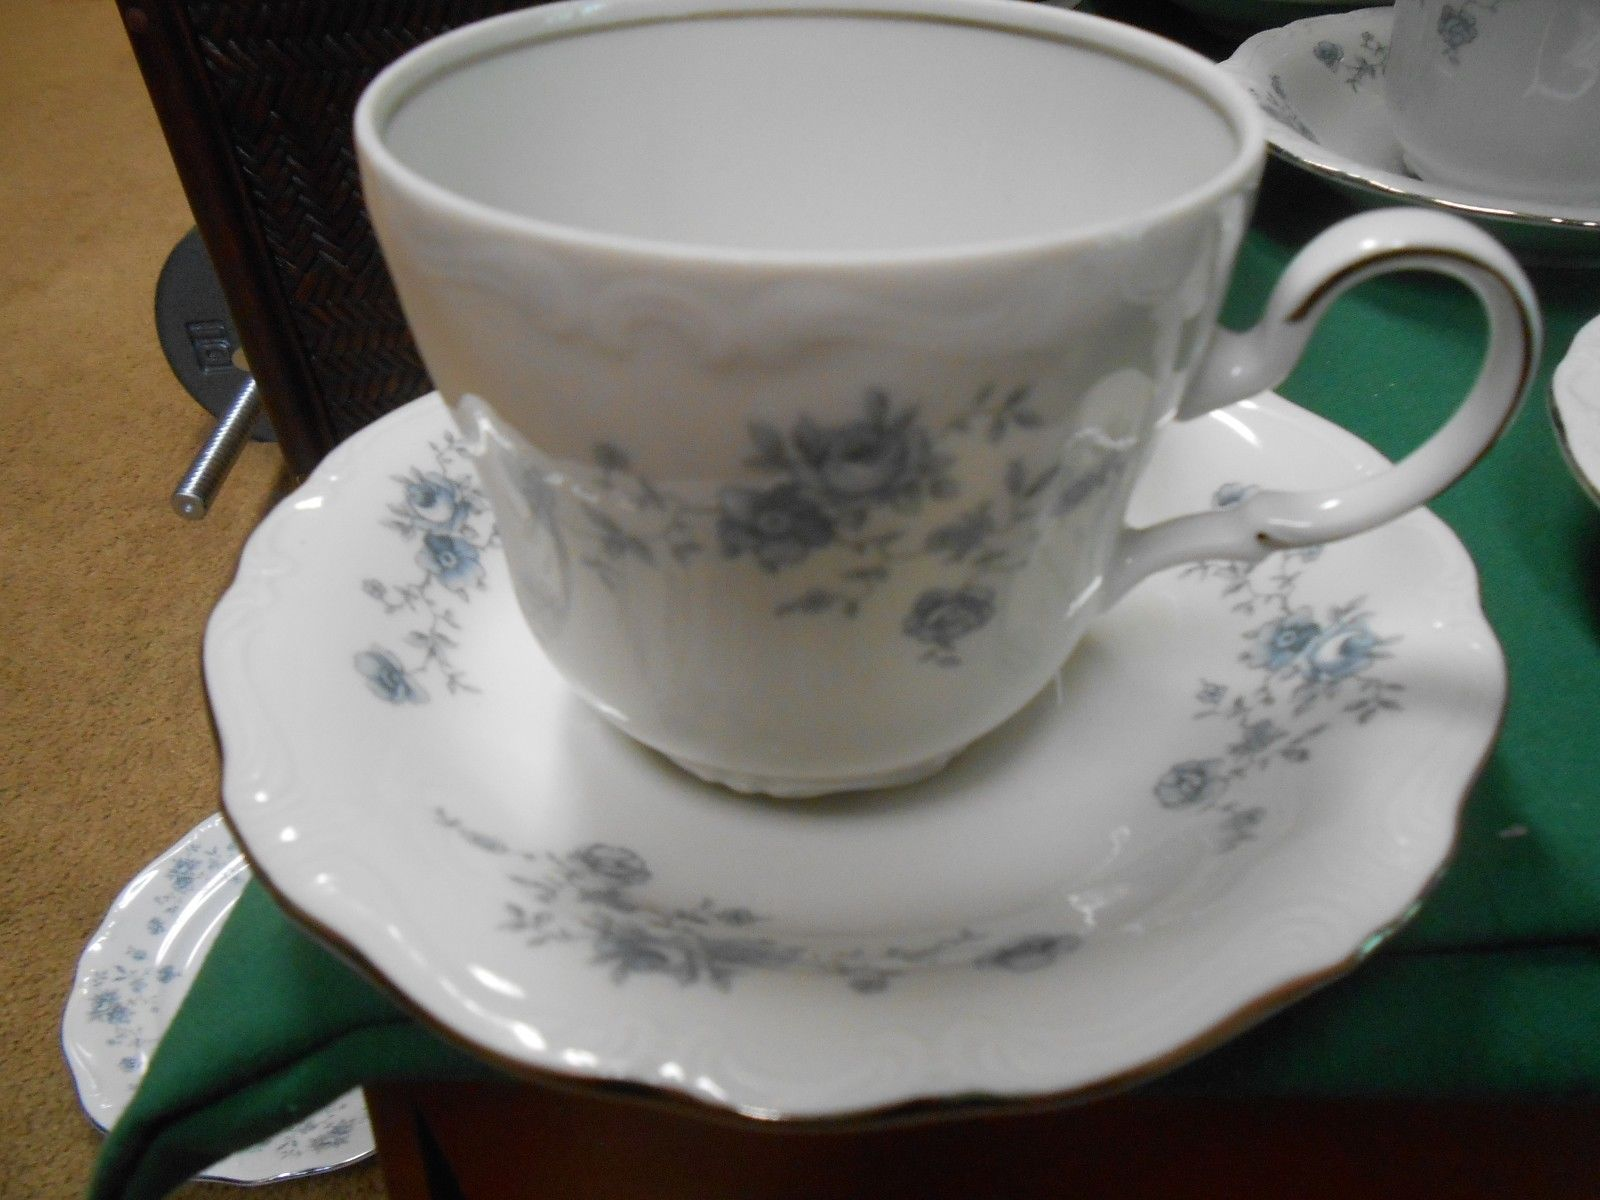 JOHANN HAVILAND Traditions BLUE GARLAND 7 CUPS & SAUCERS 1 FREE Saucer-Thailand